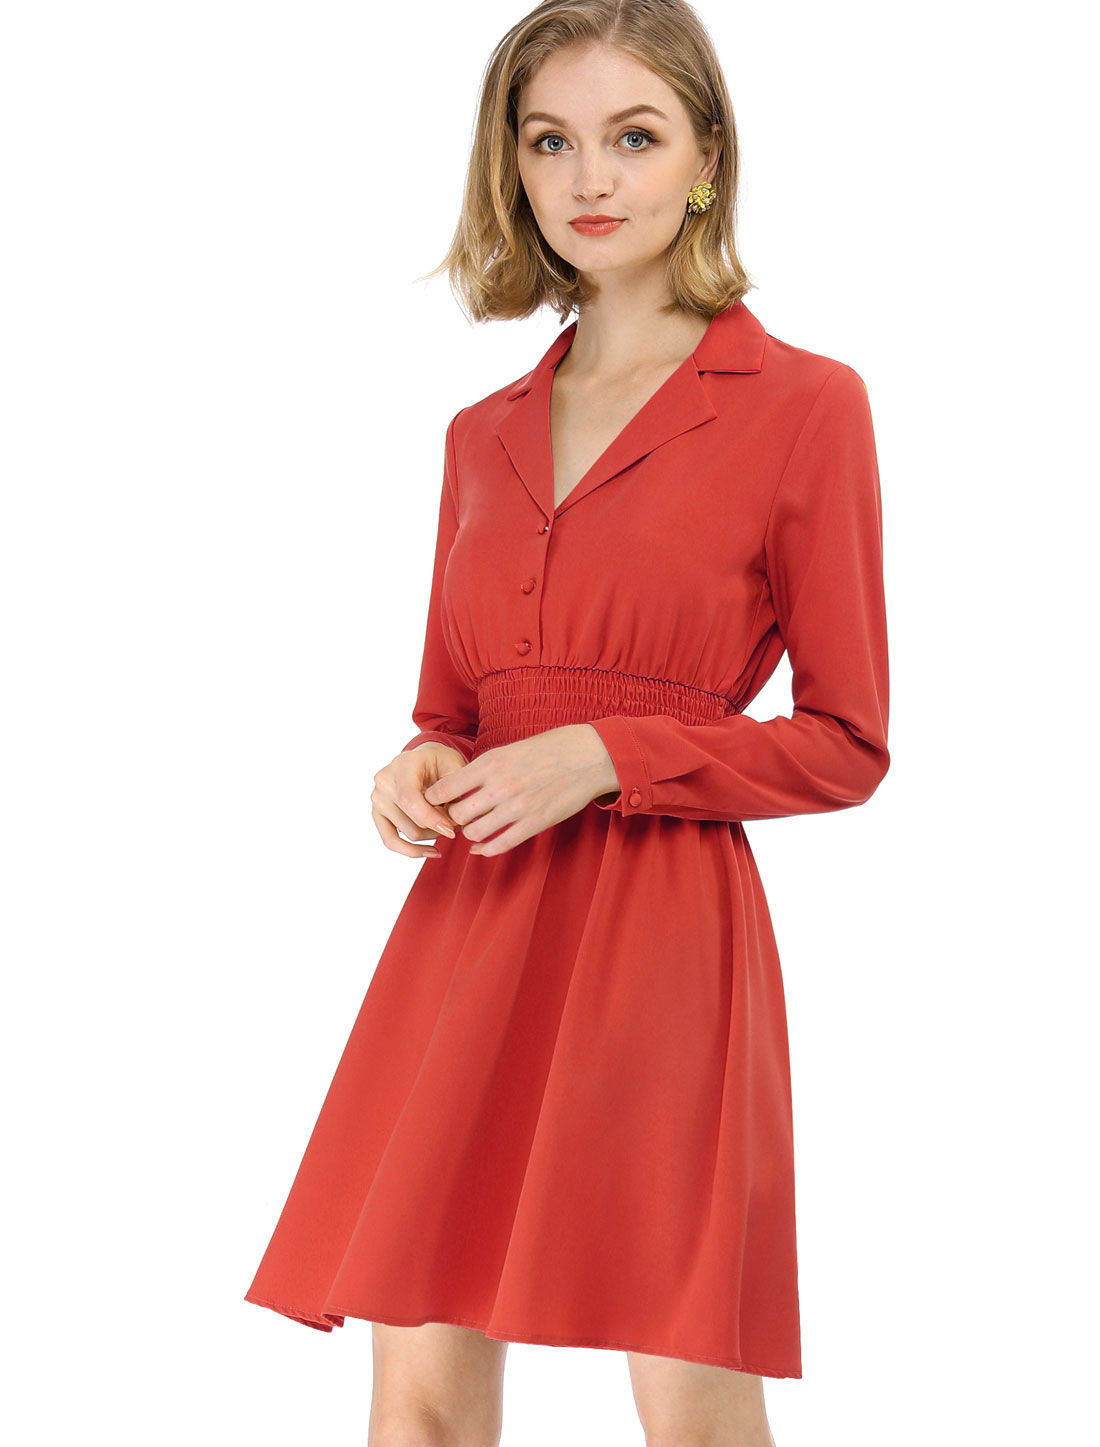 Allegra K Women's Notched Lapel Smocked Waist A-Line Dress Red Orange L